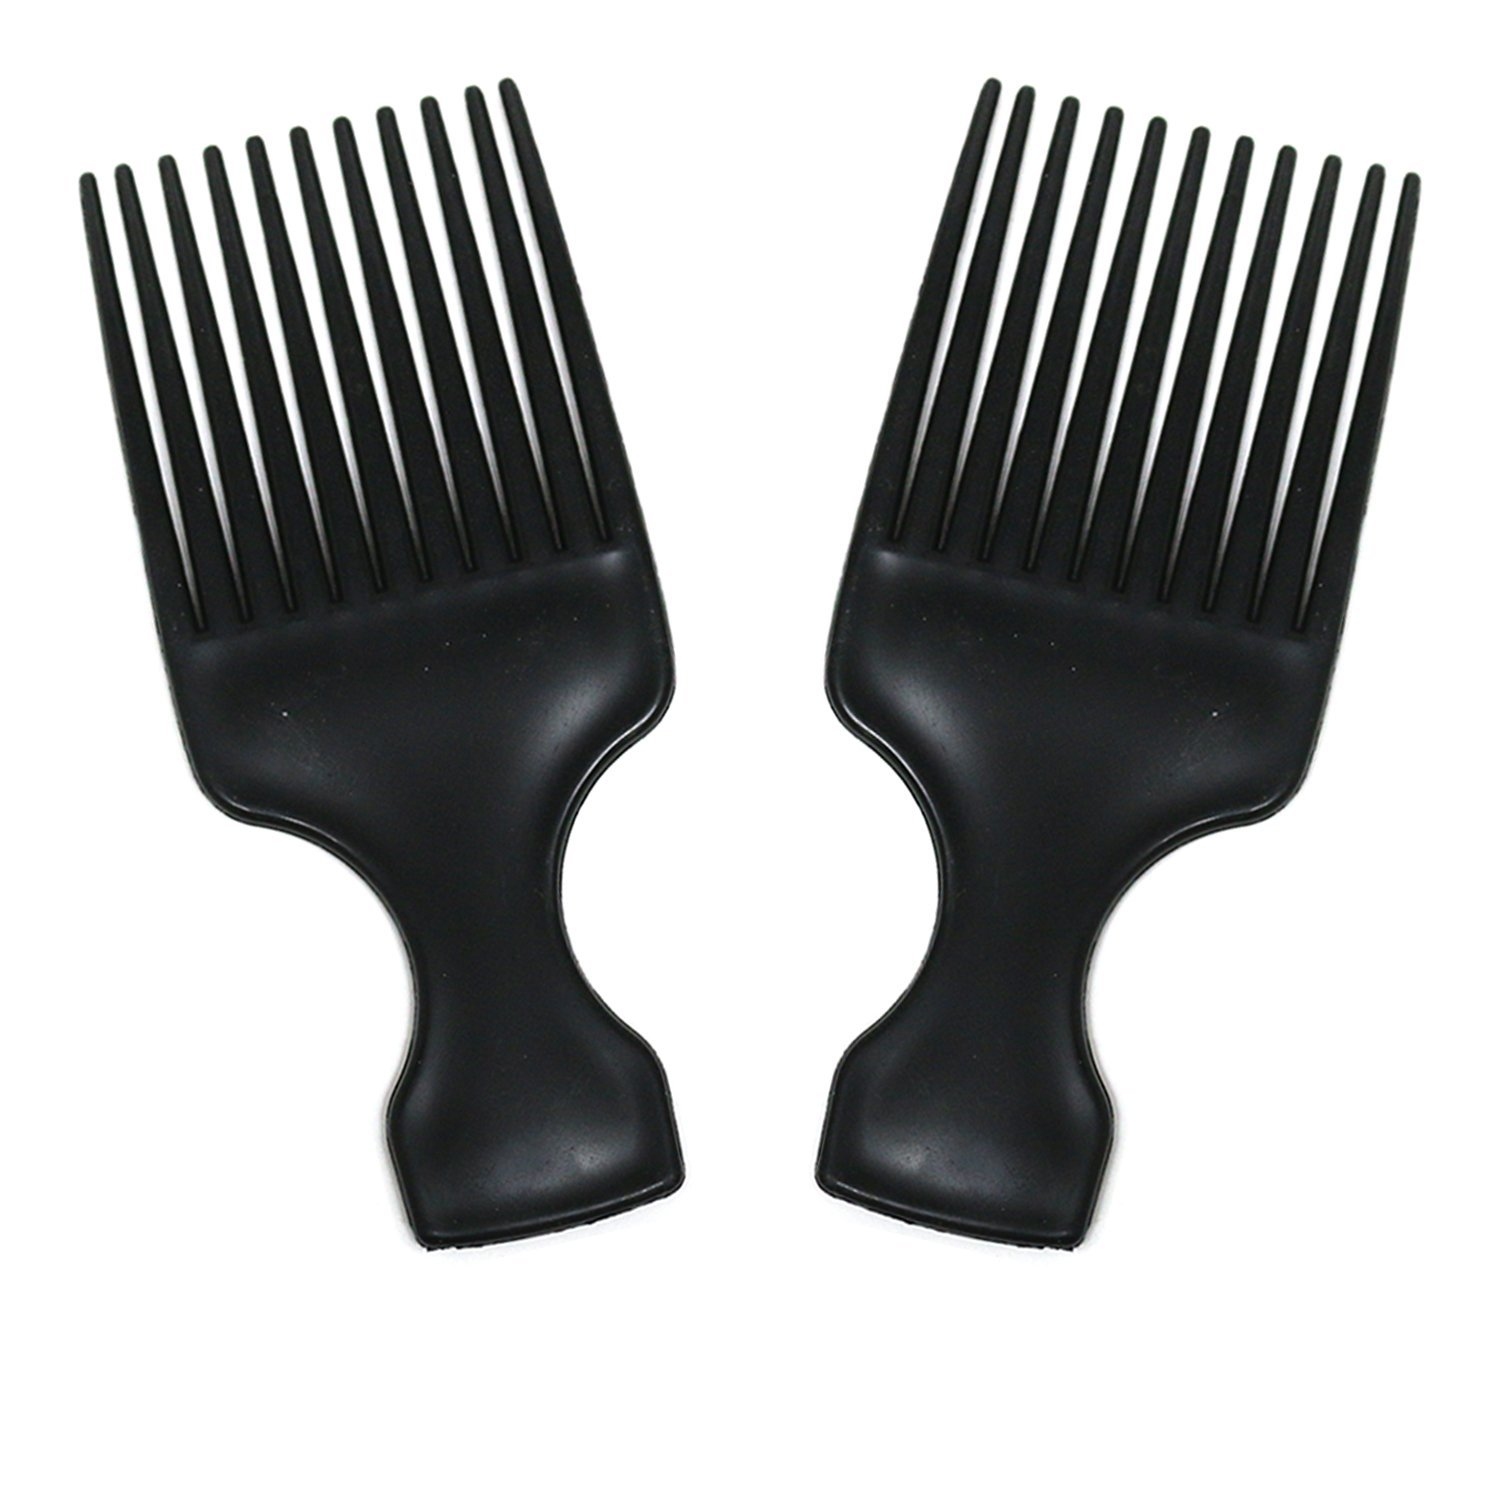 Afro Comb X2 For Thick Hair. Simple Styling, Untangle With Ease. Rocking Party